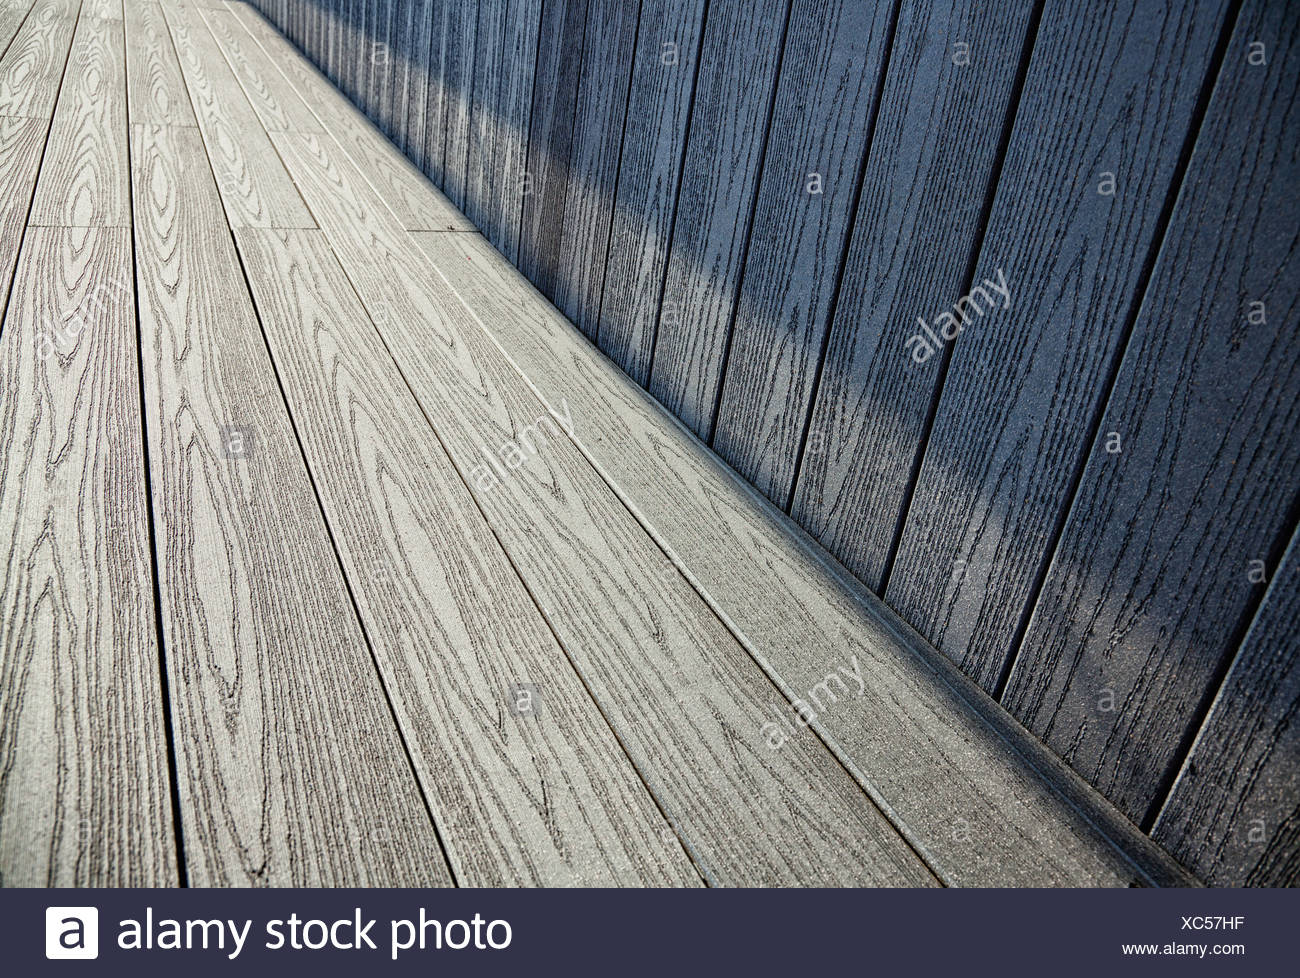 perspective wooden interior, is empty for your design - Stock Image